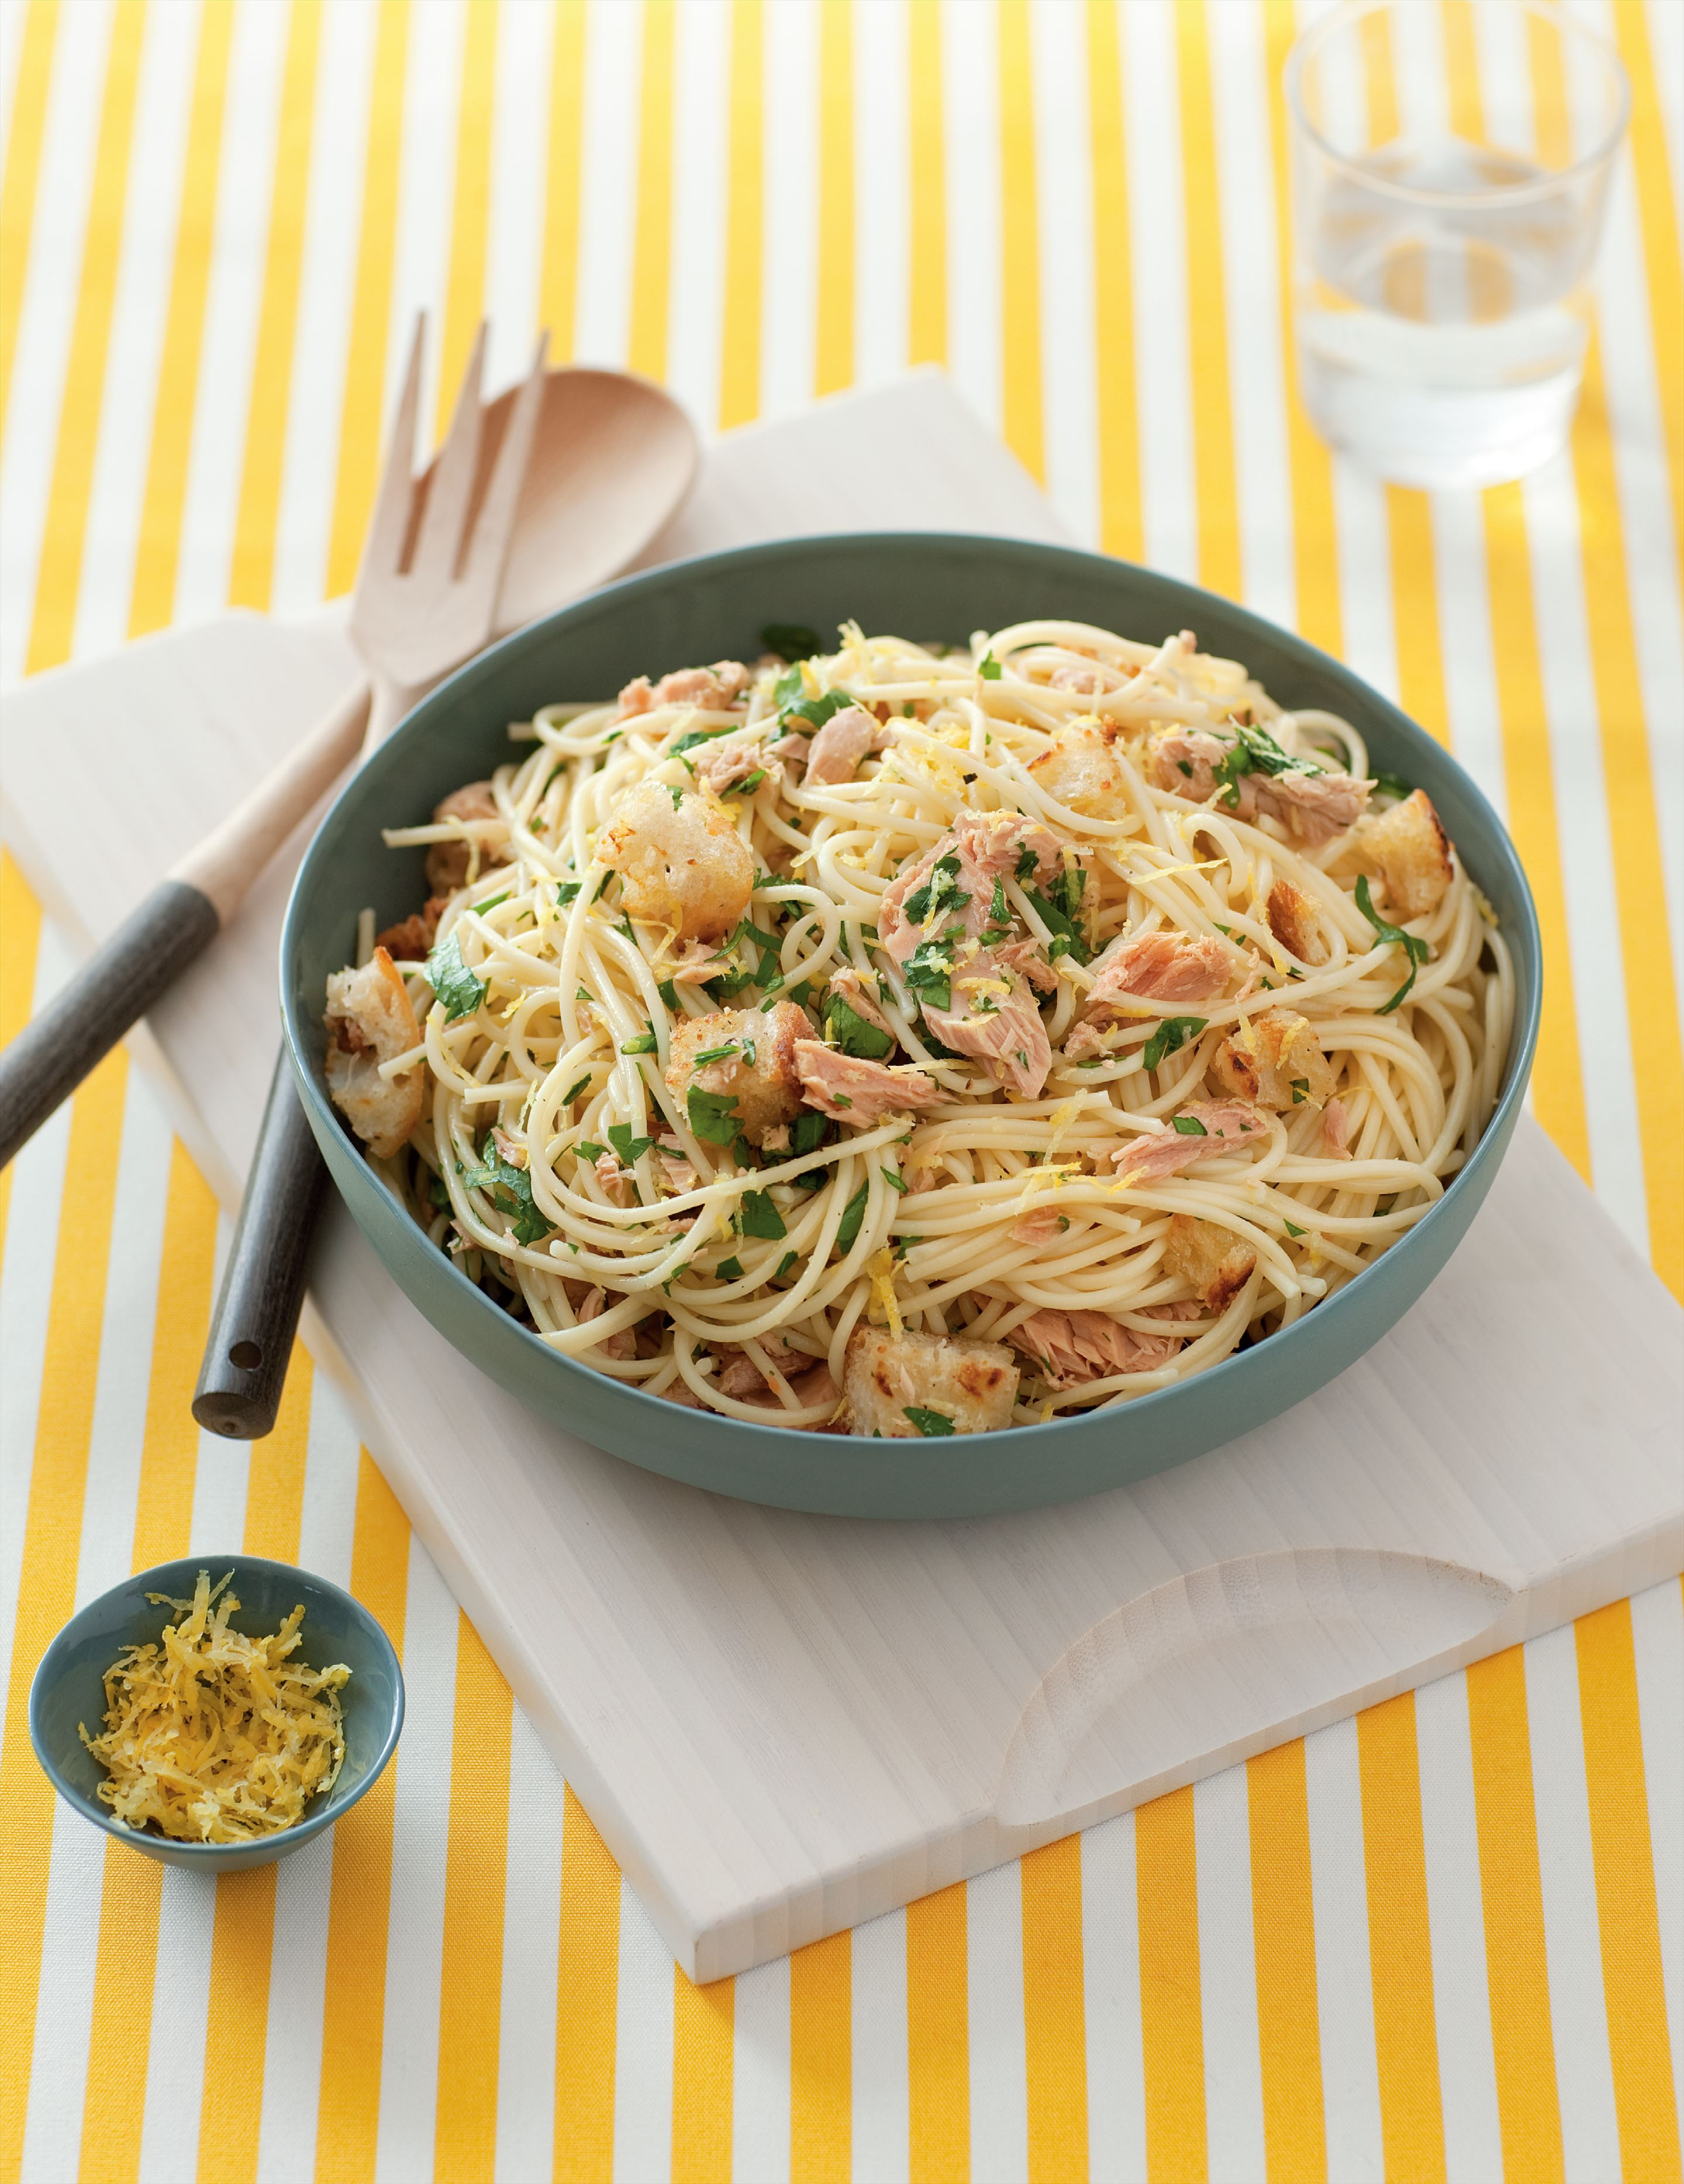 Spaghetti with tuna, croutons, parsley and lemon